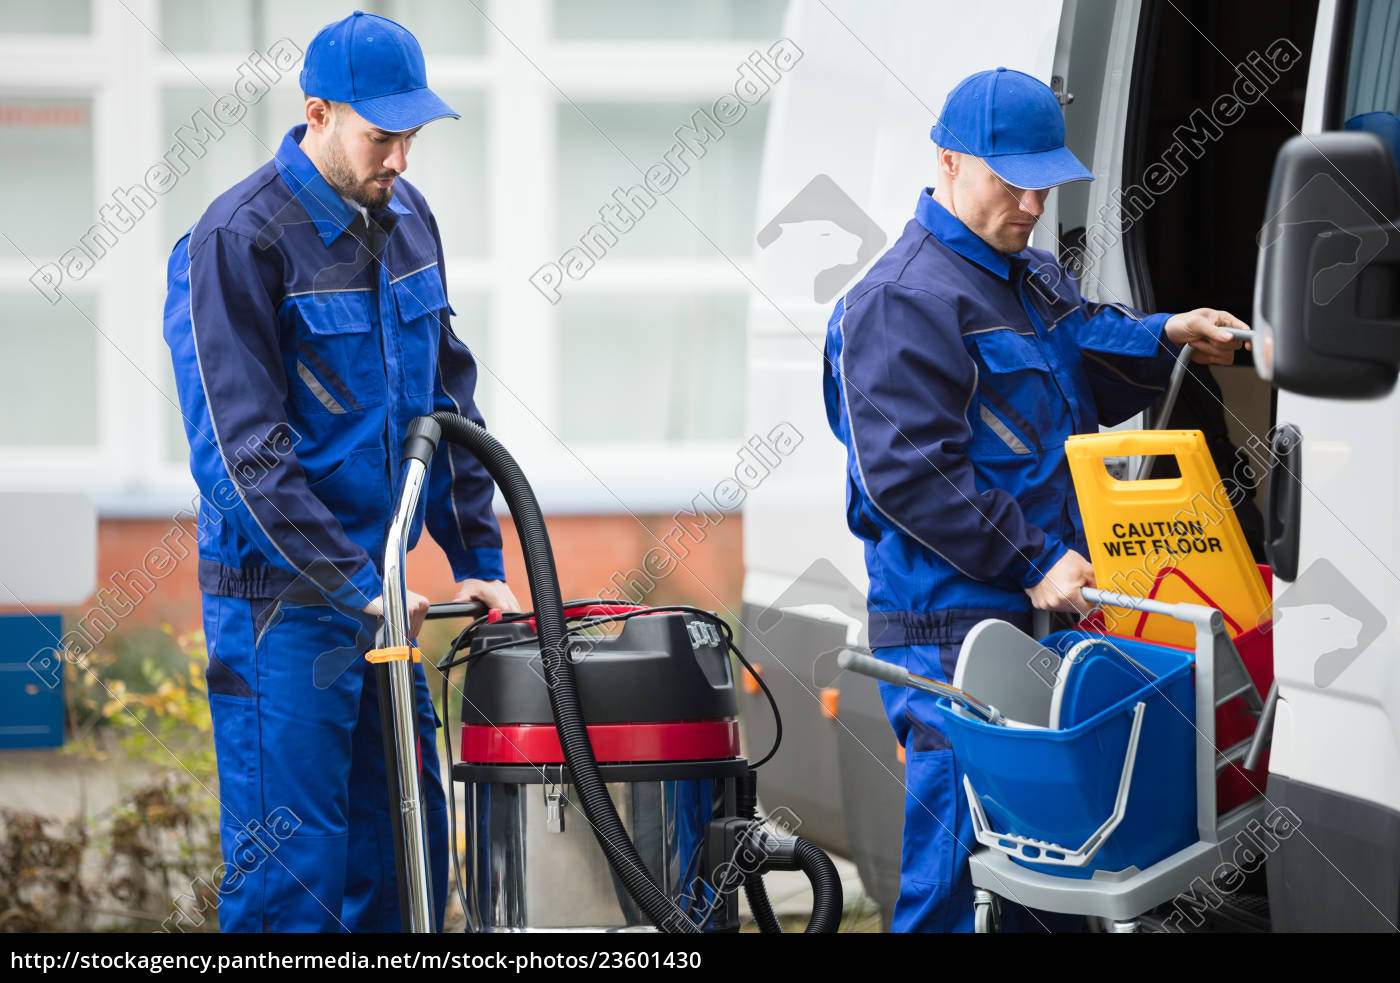 two, male, janitor, unloading, cleaning, equipment - 23601430